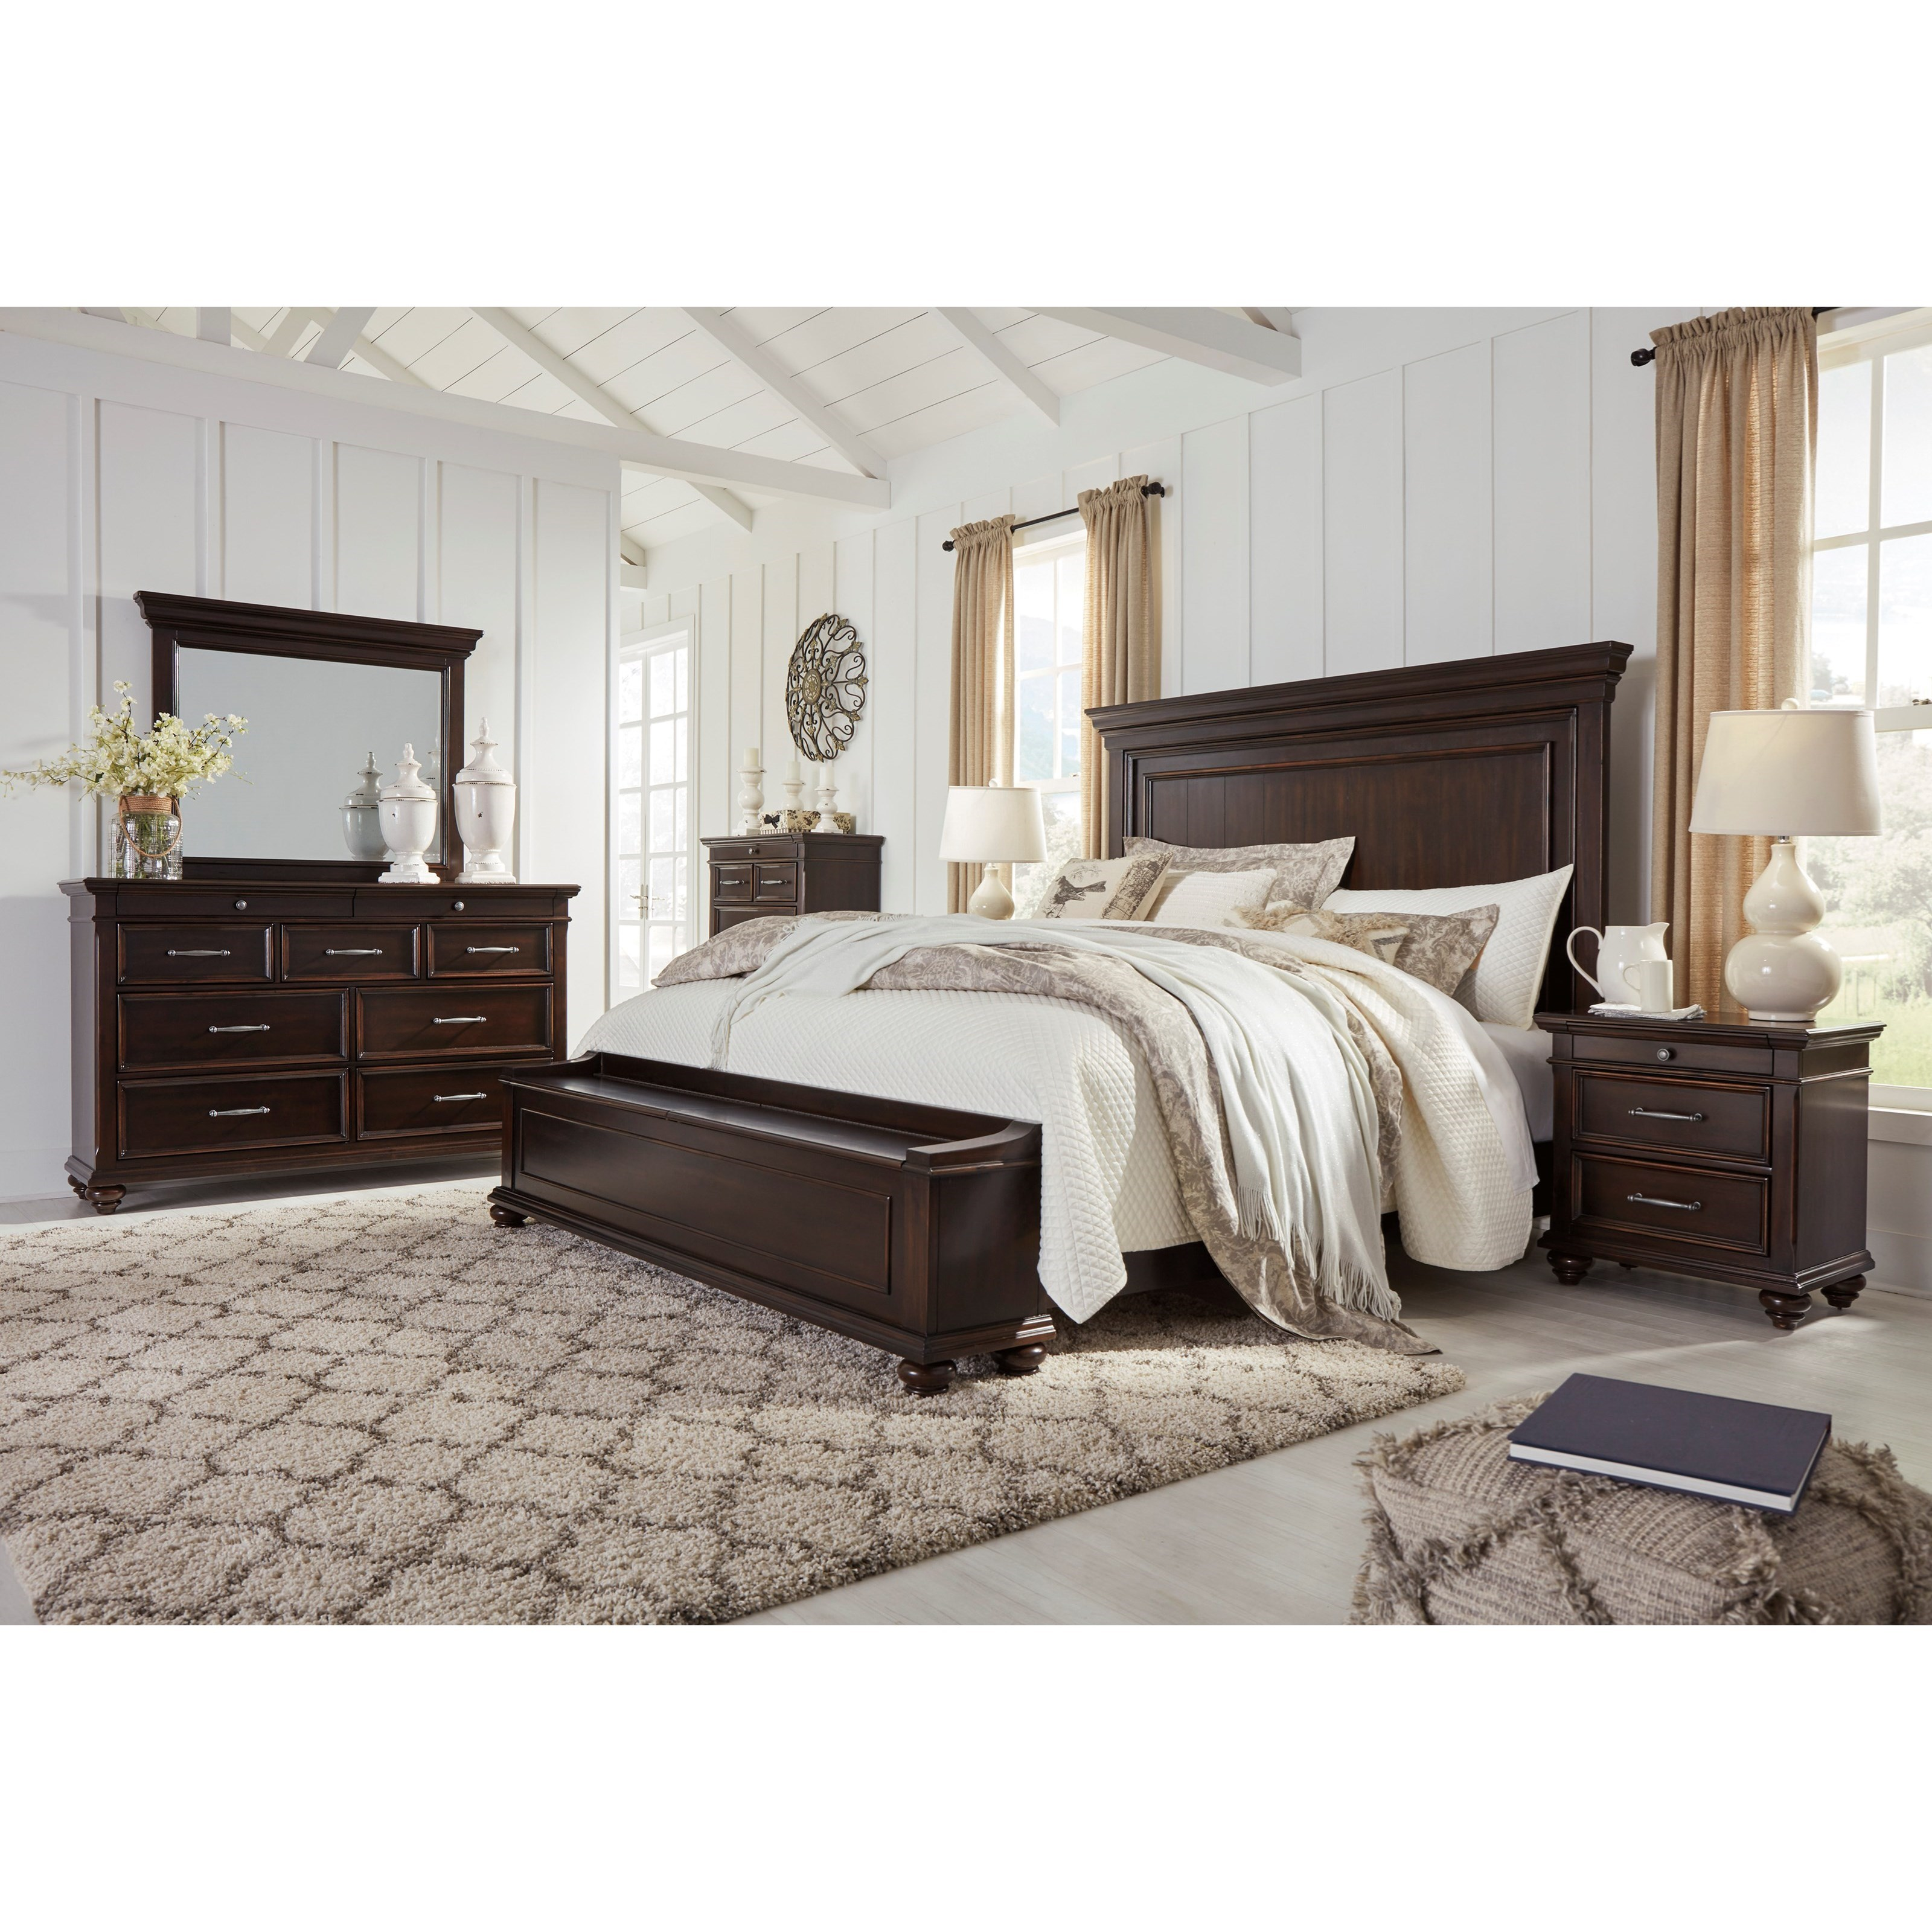 California king bedroom group by signature design by - California king bedroom furniture ...